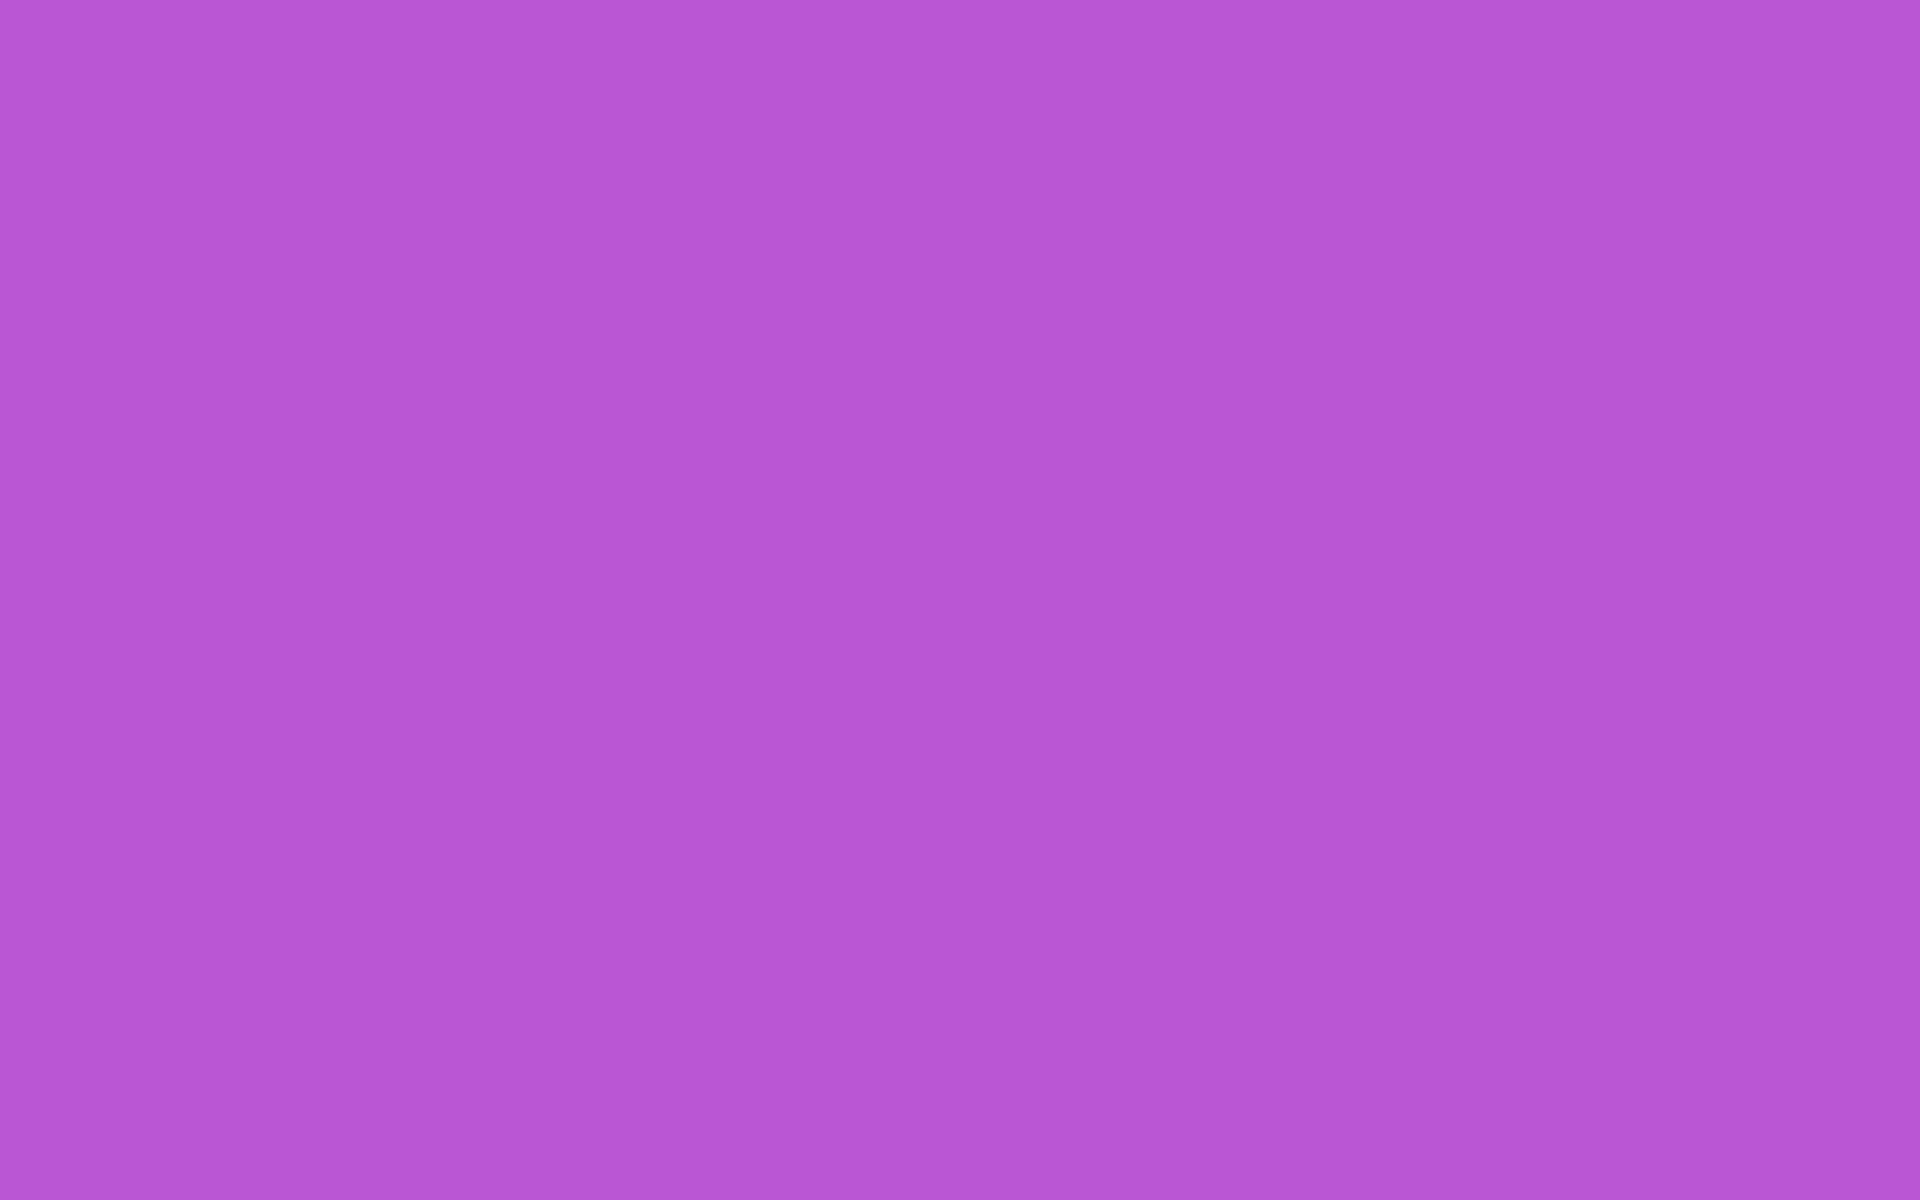 1920x1200 Medium Orchid Solid Color Background